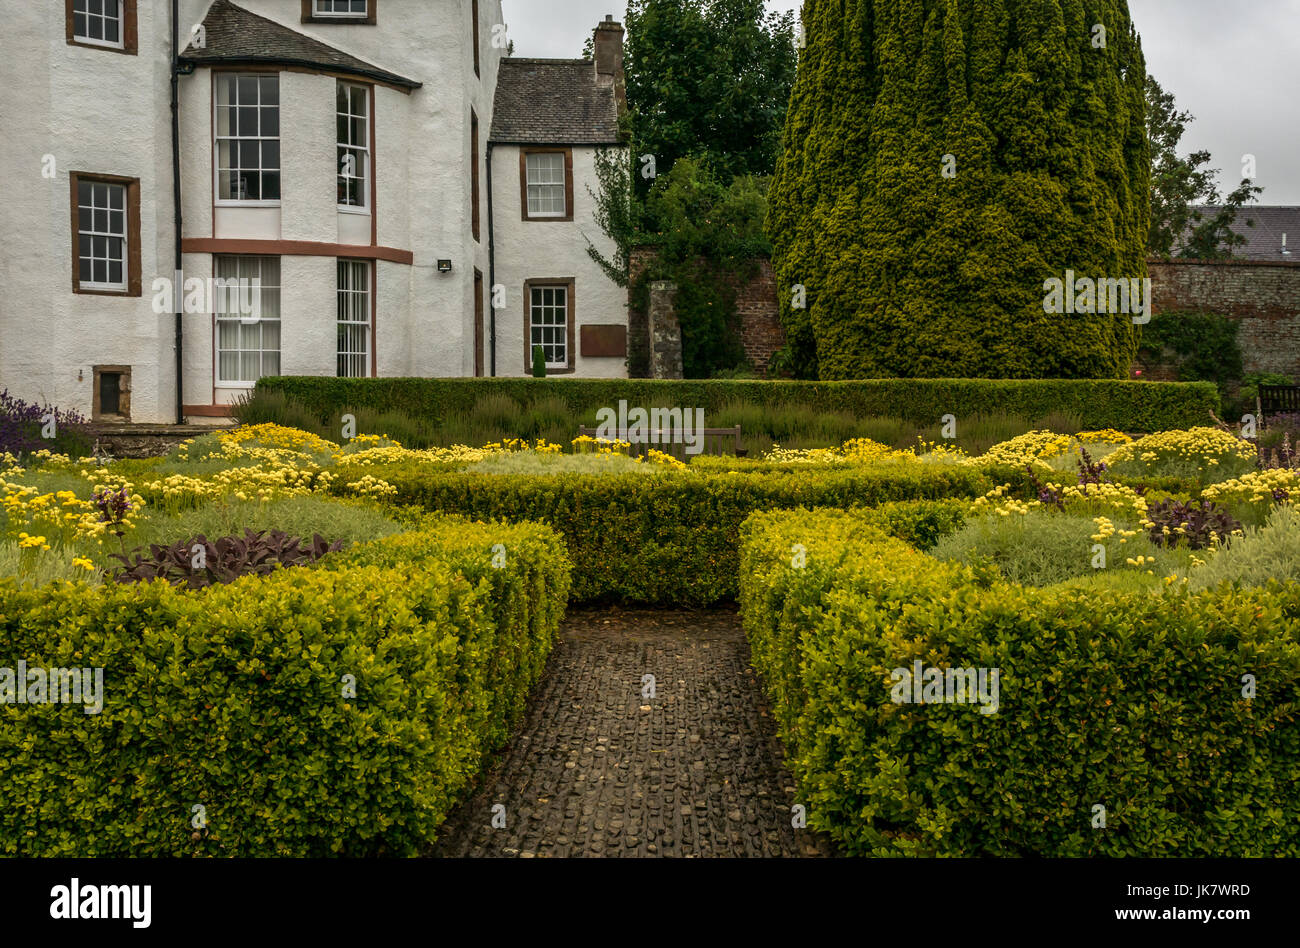 Formal sunken garden and Haddington House, St Mary's Pleasance garden,Haddington, East Lothian, Scotland, UK - Stock Image